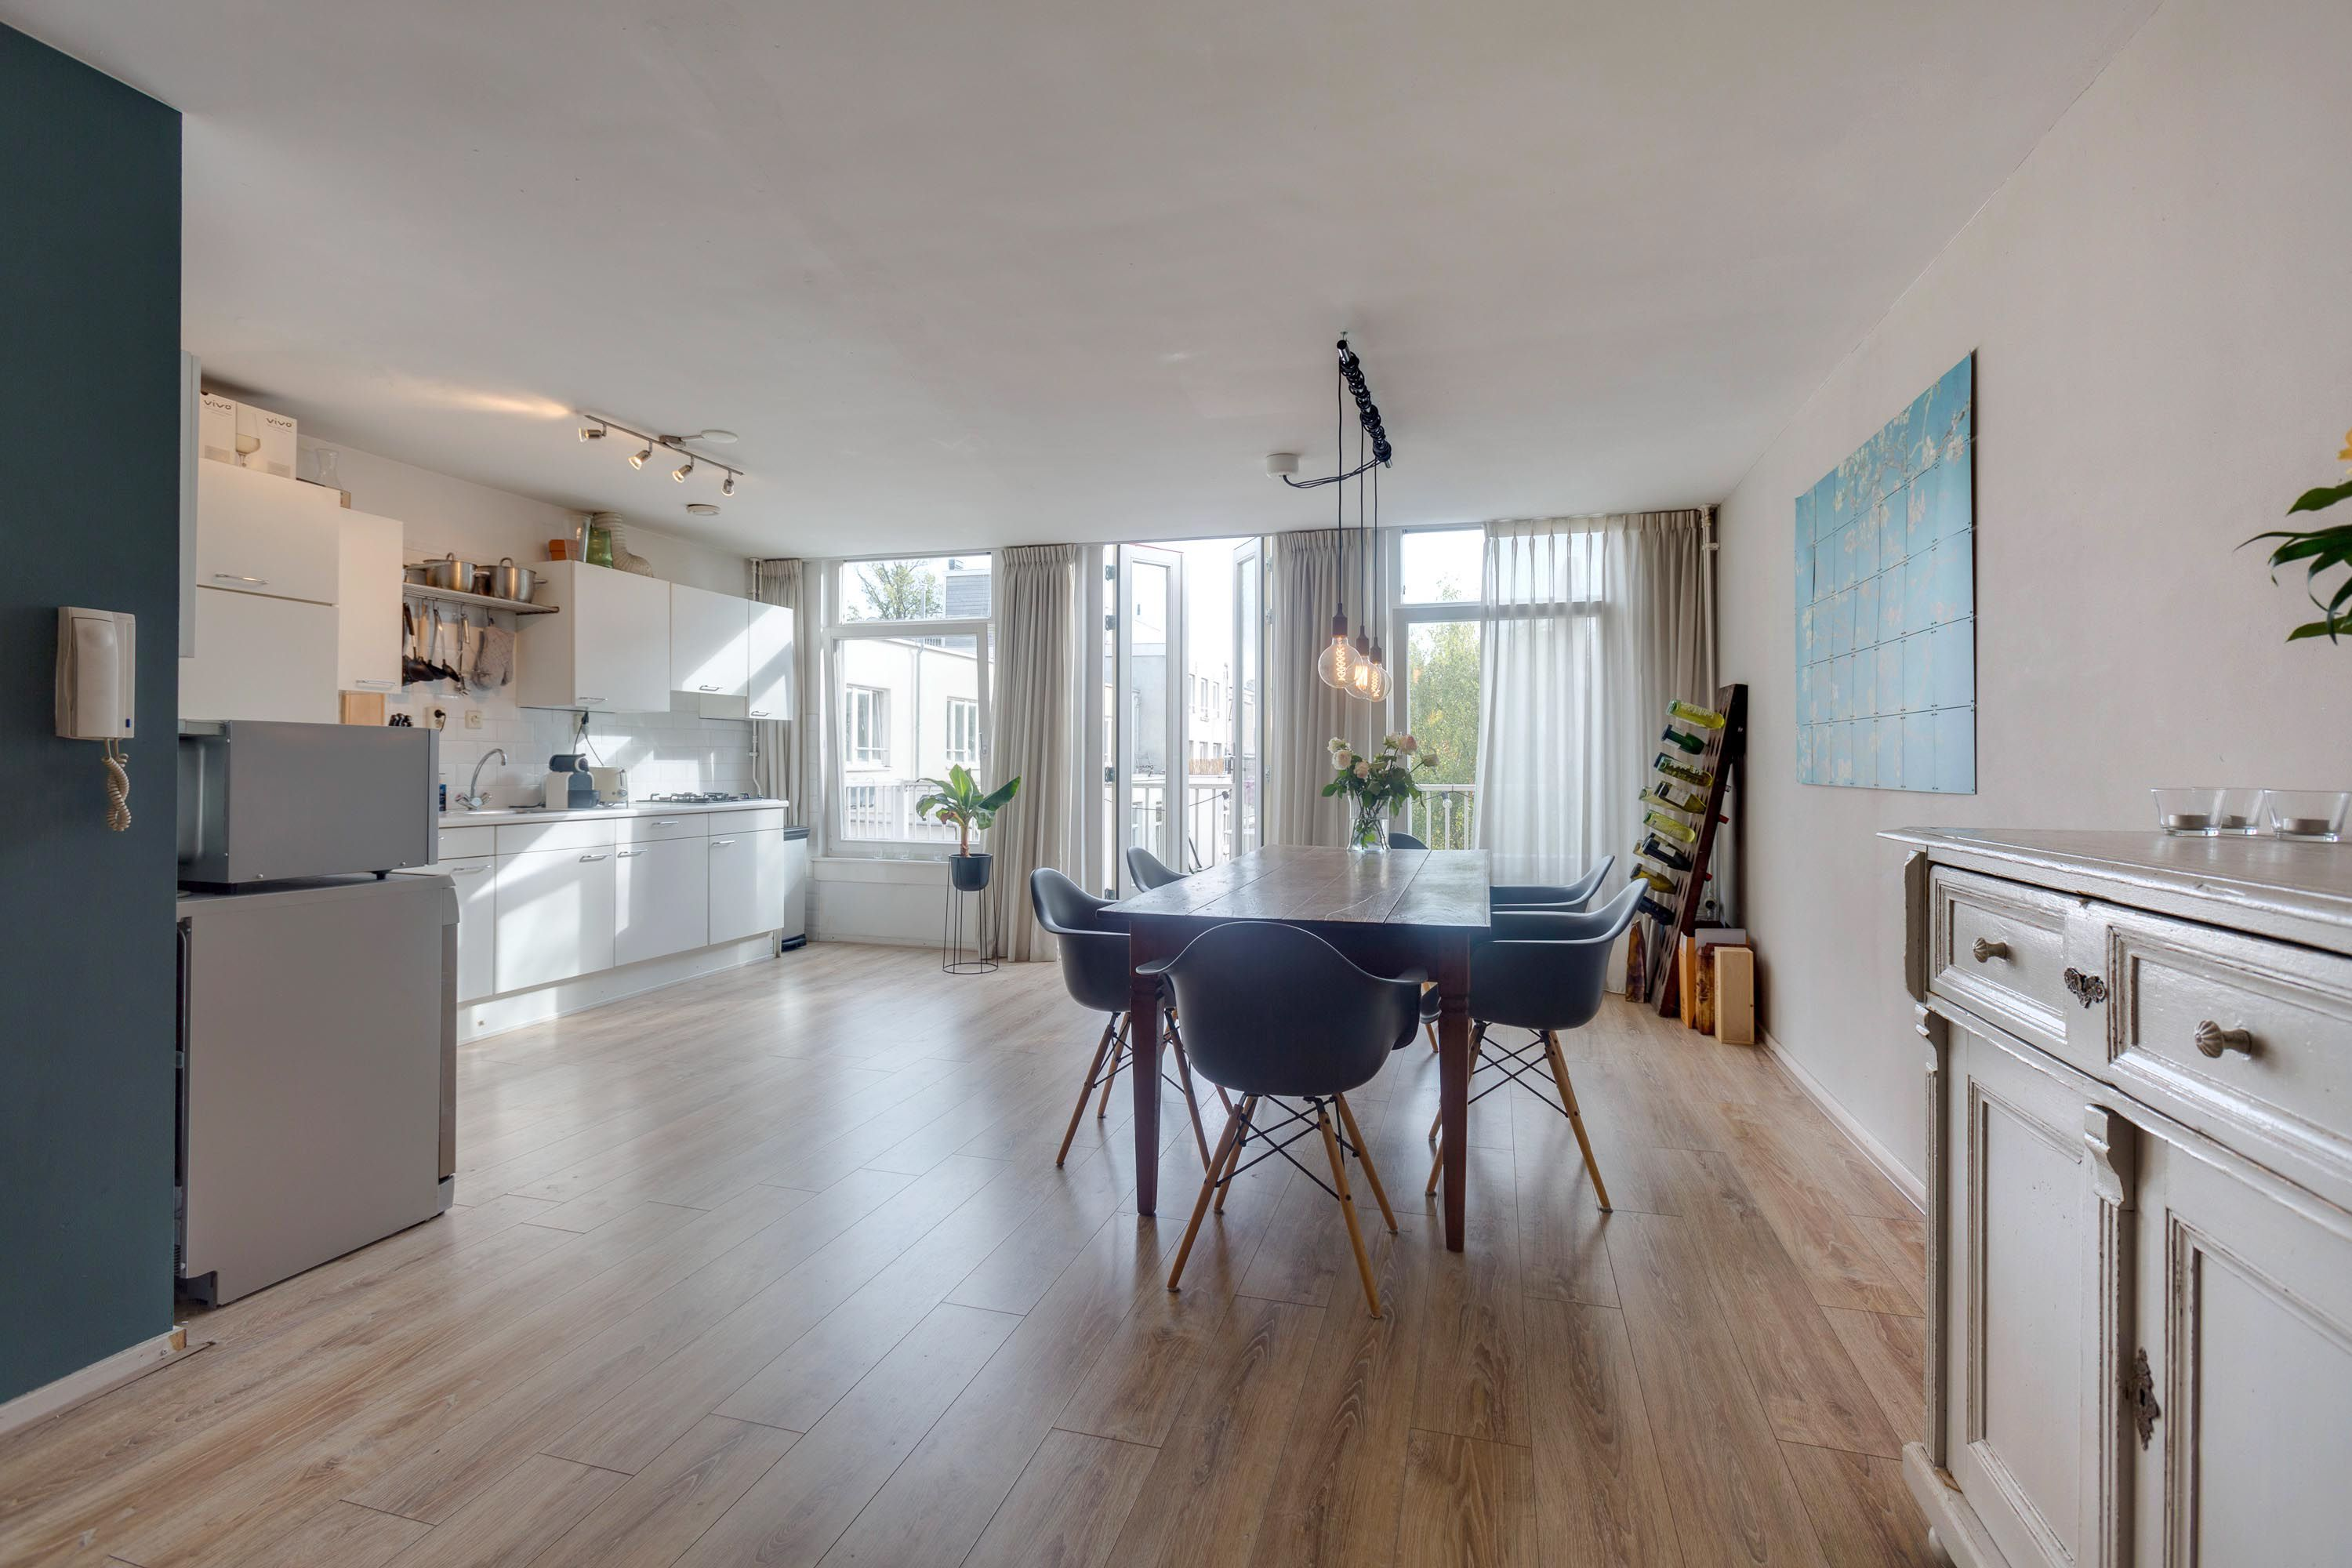 For Rent Kinkerstraat Amsterdam Netherlands 1600 Monthly